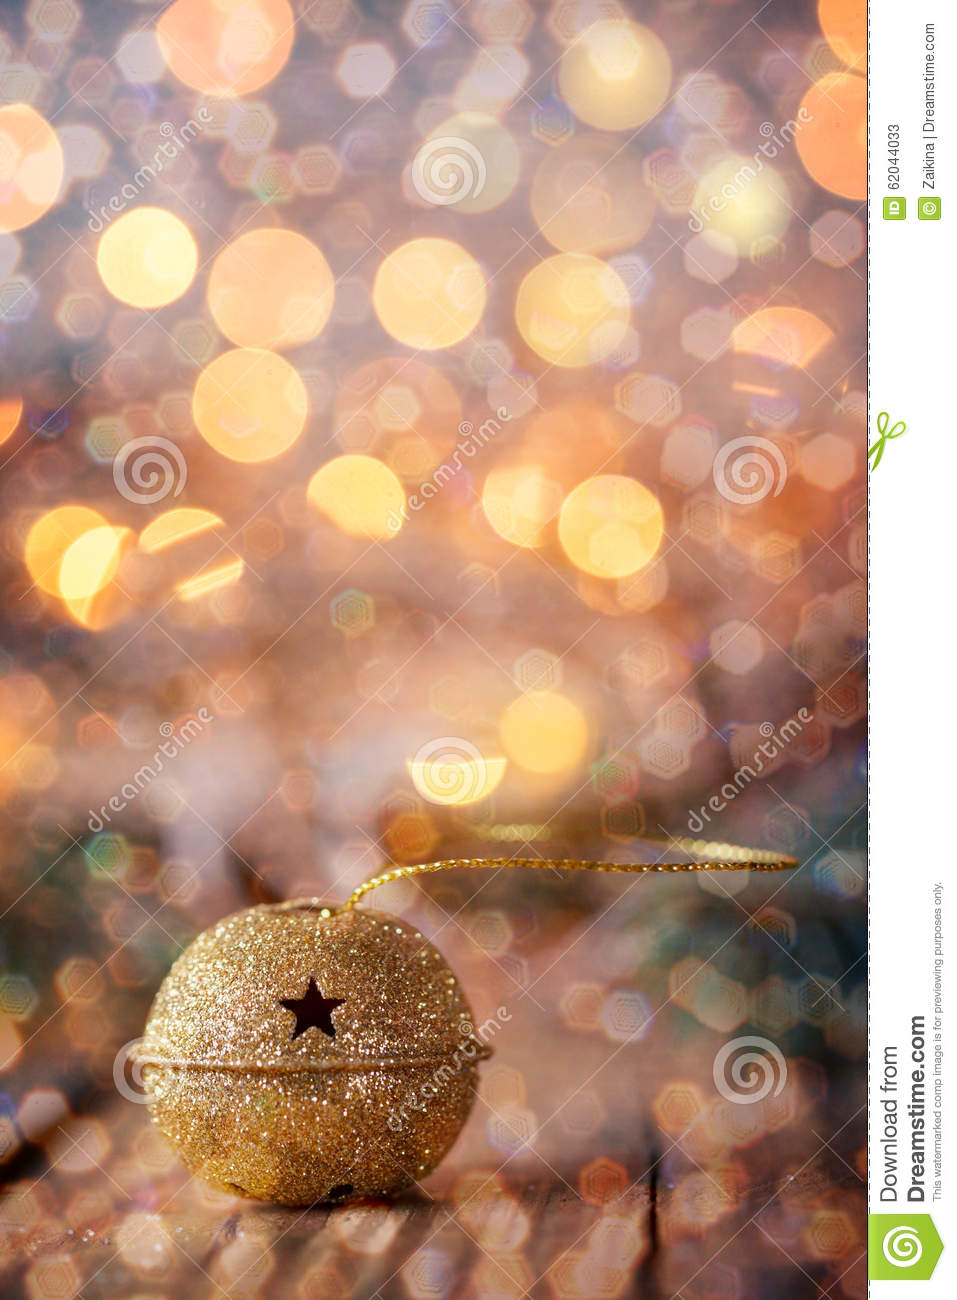 Gold Metal Jingle Bell With Star On Wooden Table Boke